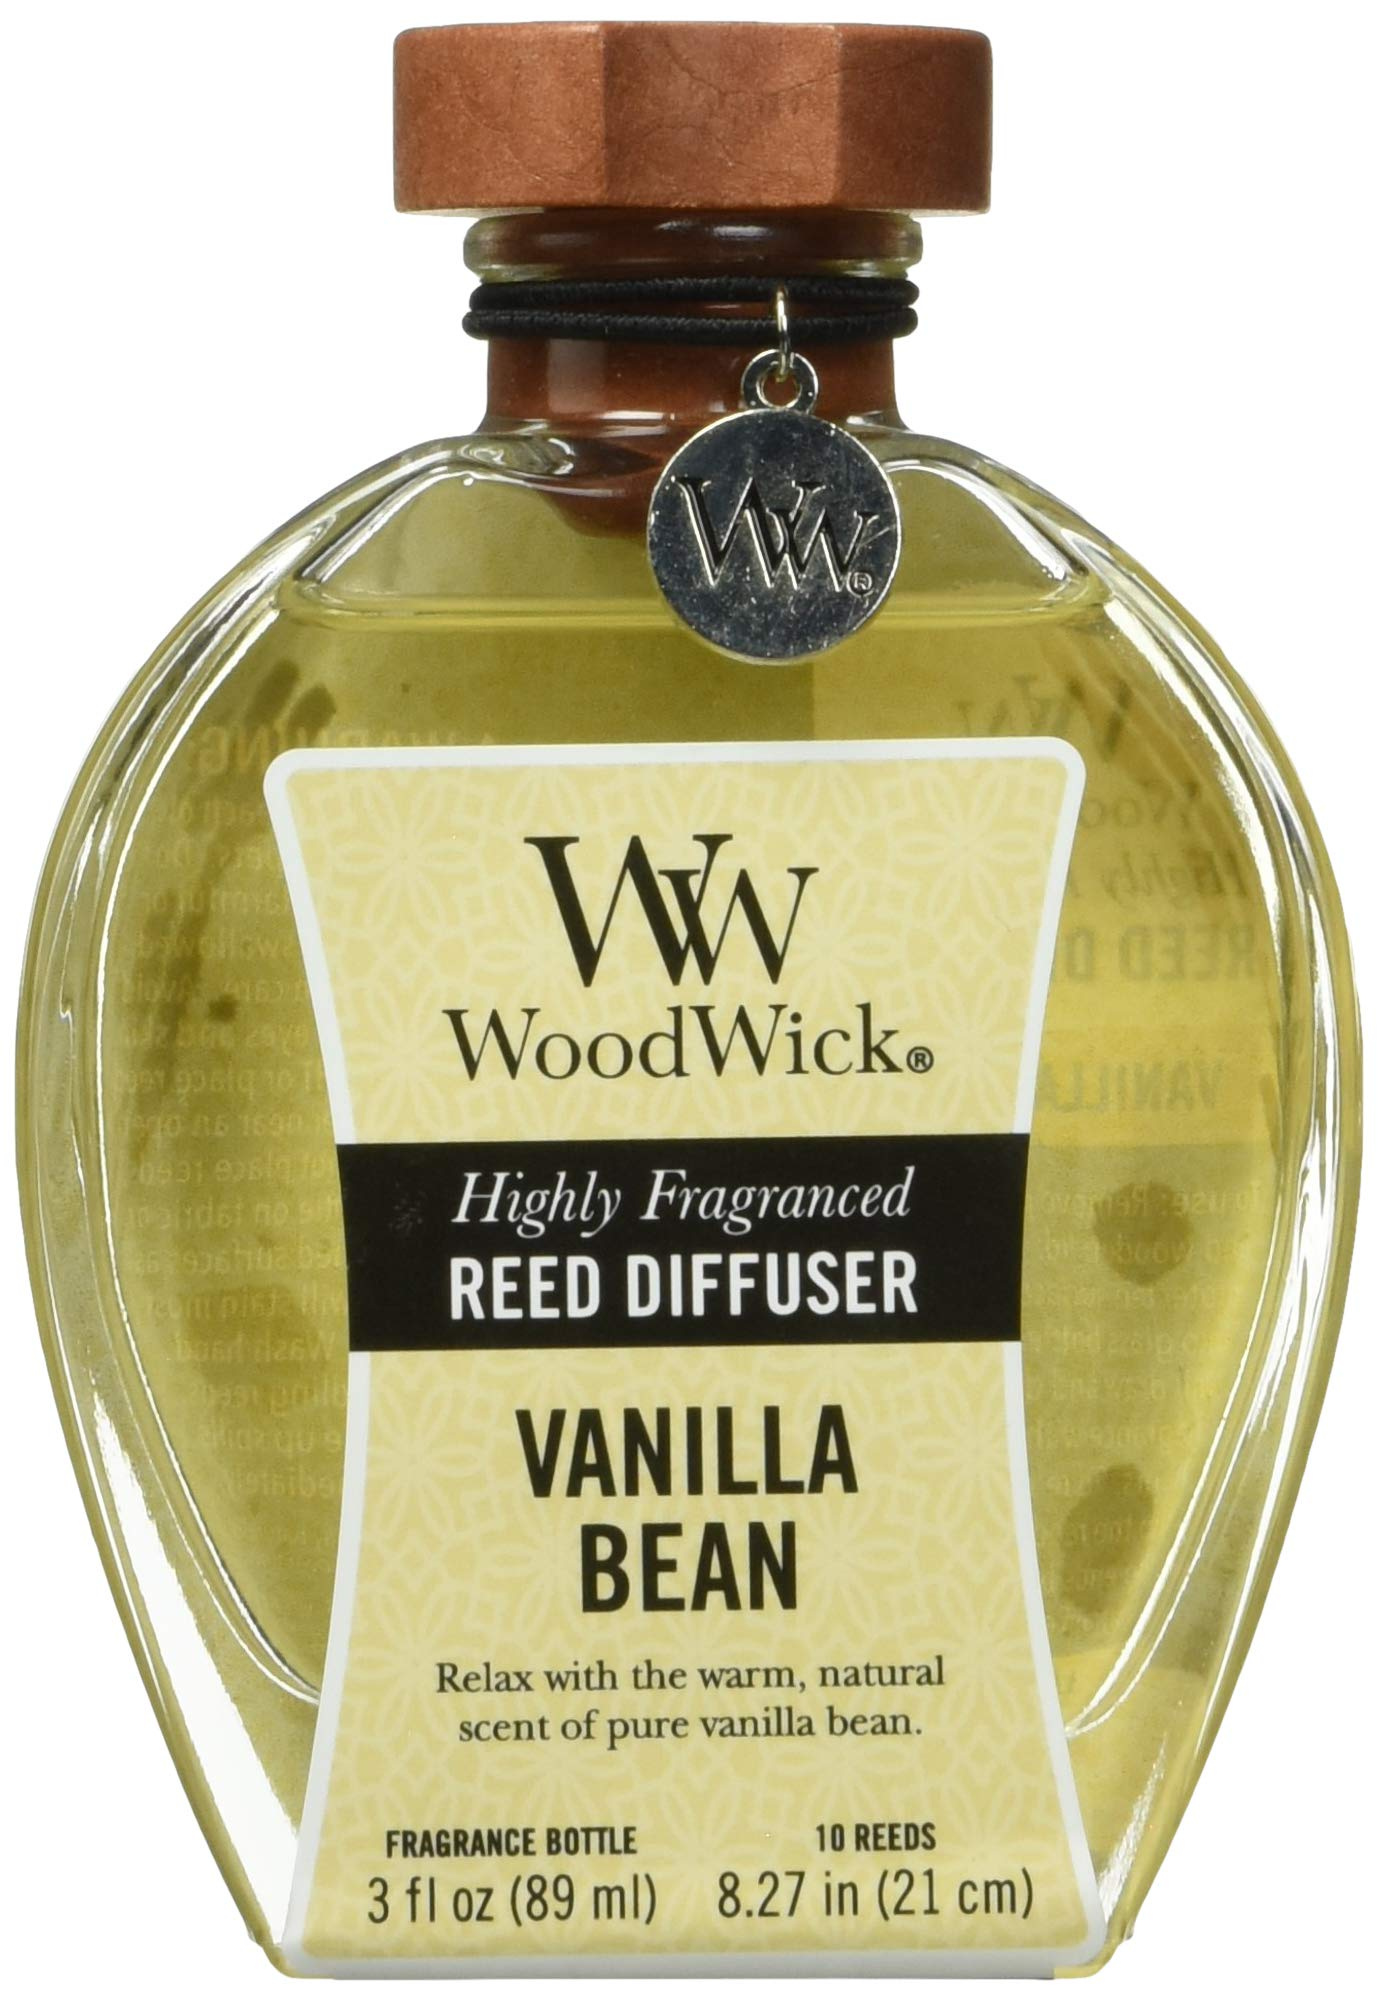 WoodWick Vanilla Bean Reed Diffuser, 3 oz. by WoodWick